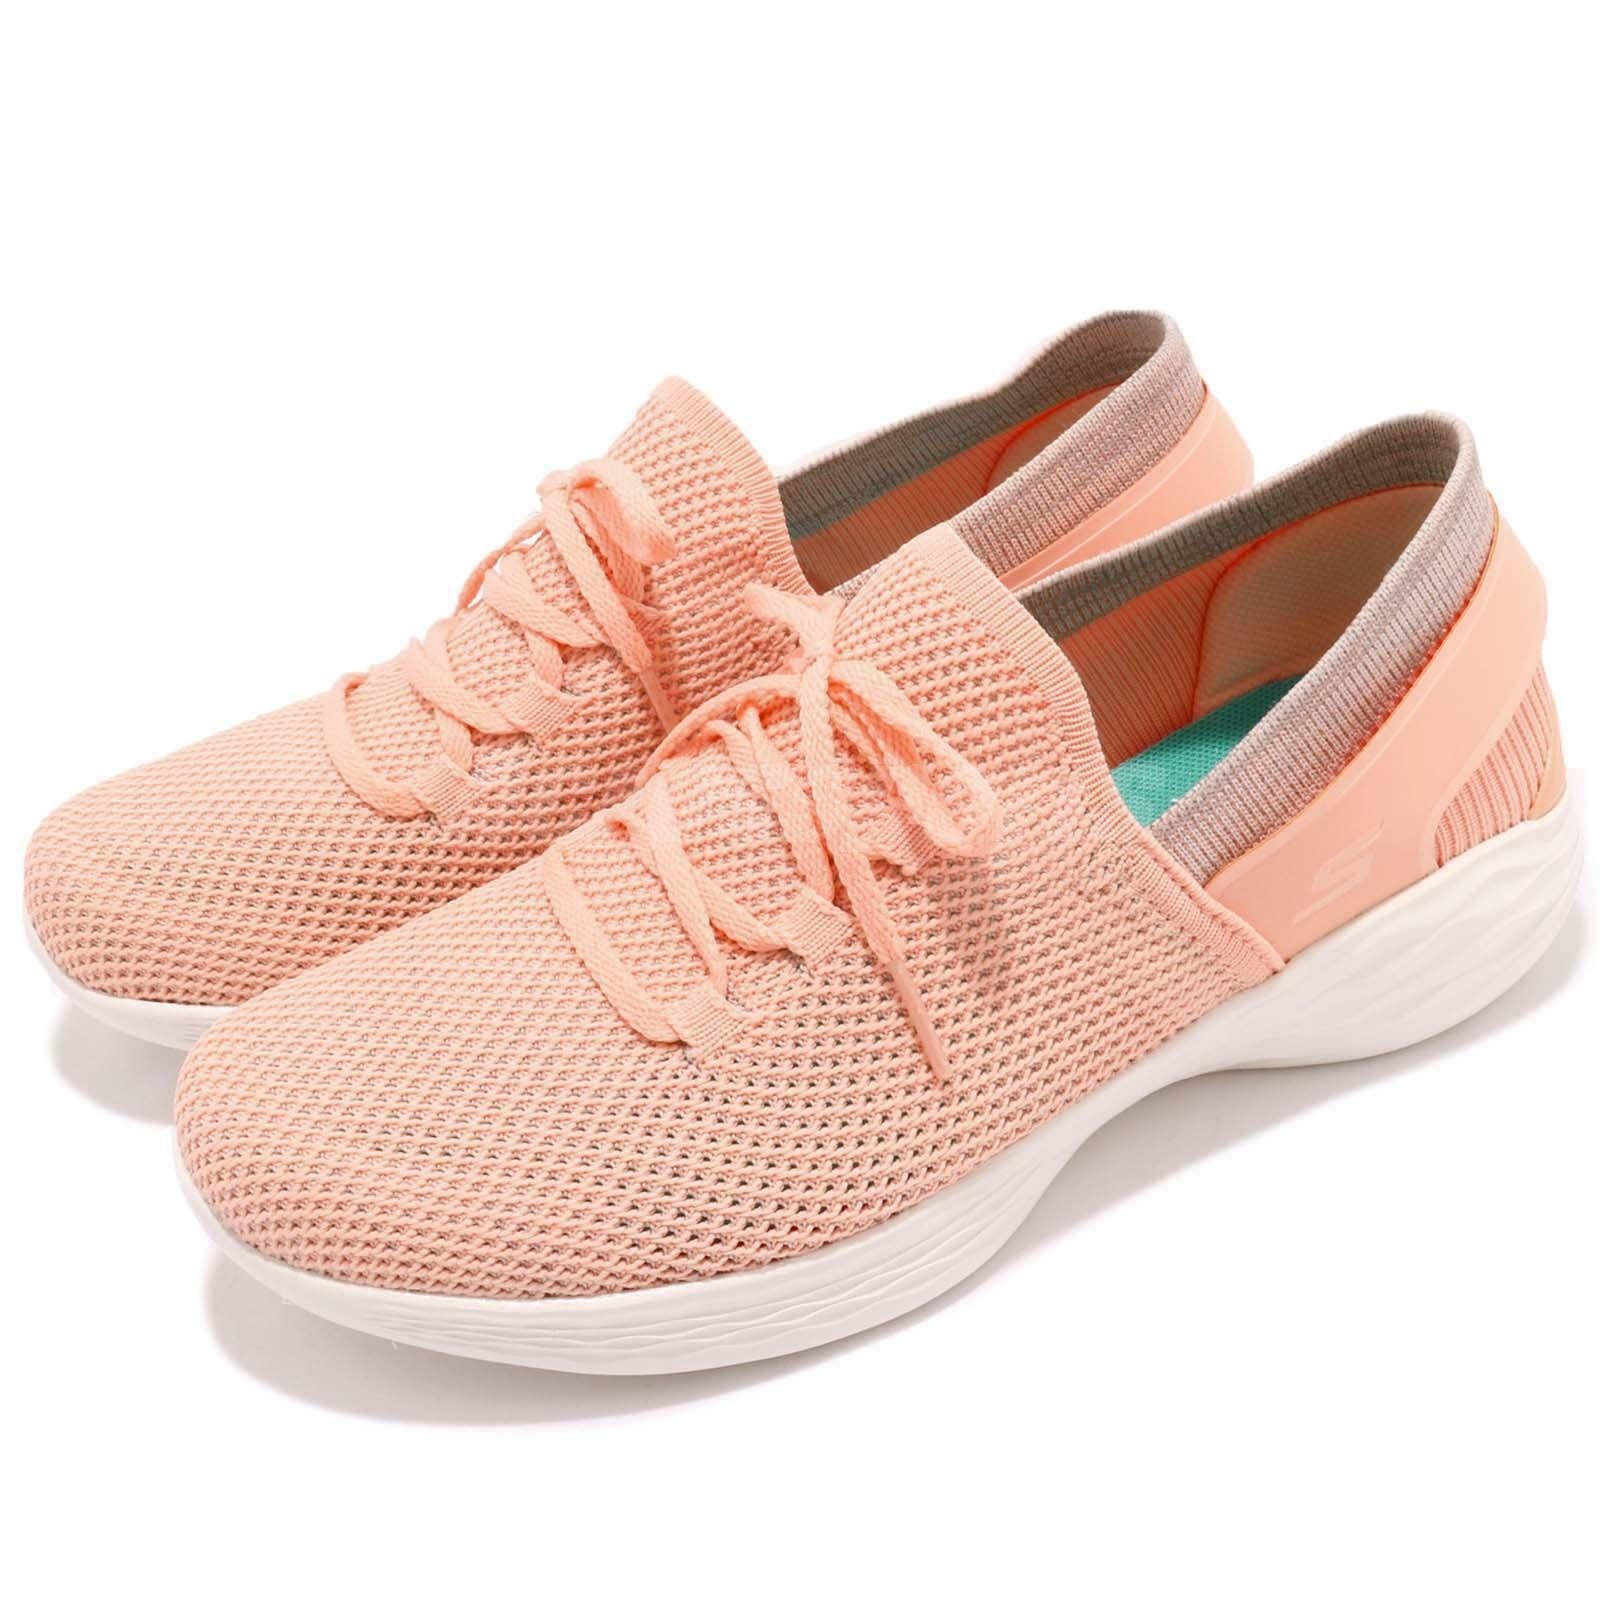 Skechers You-Spirit Peach Rose Chaussure Blanc Women Casual Walking Chaussure Rose Basket 14960-PCH 8f3dac